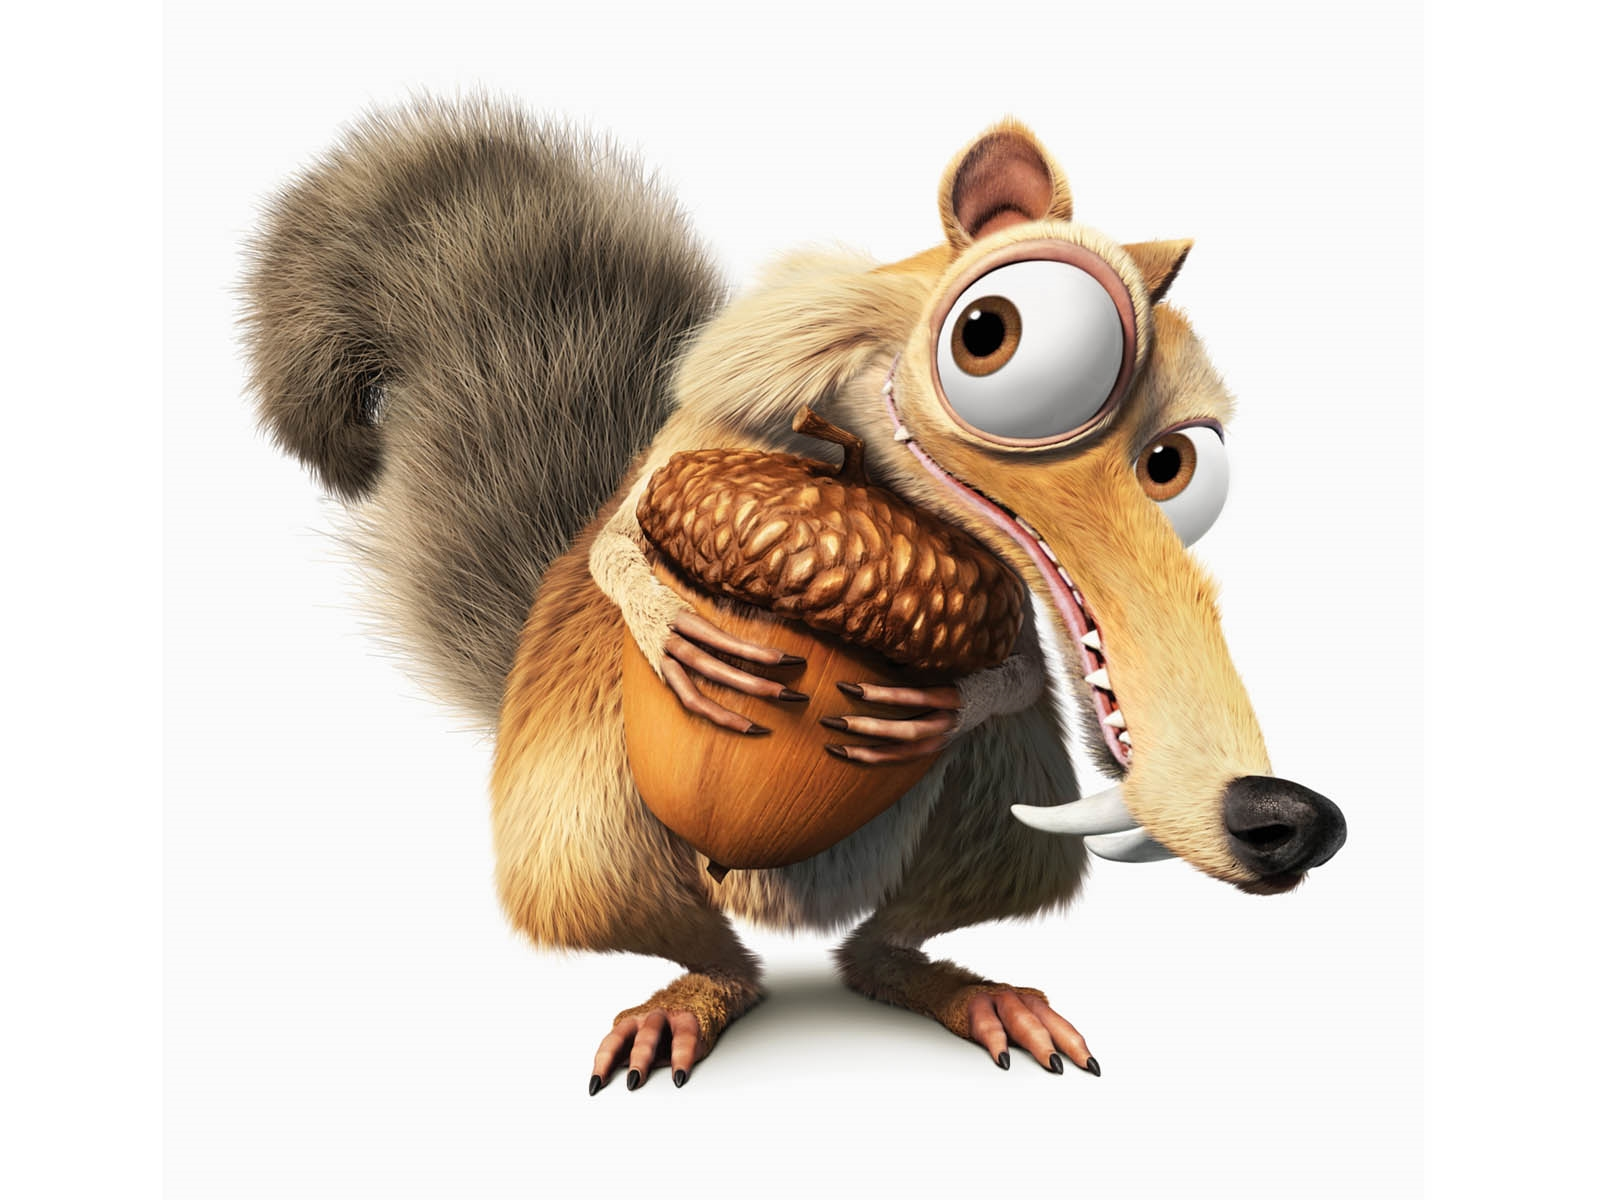 ice age wallpapers 1 2 3 4 hd free scrat squirrel